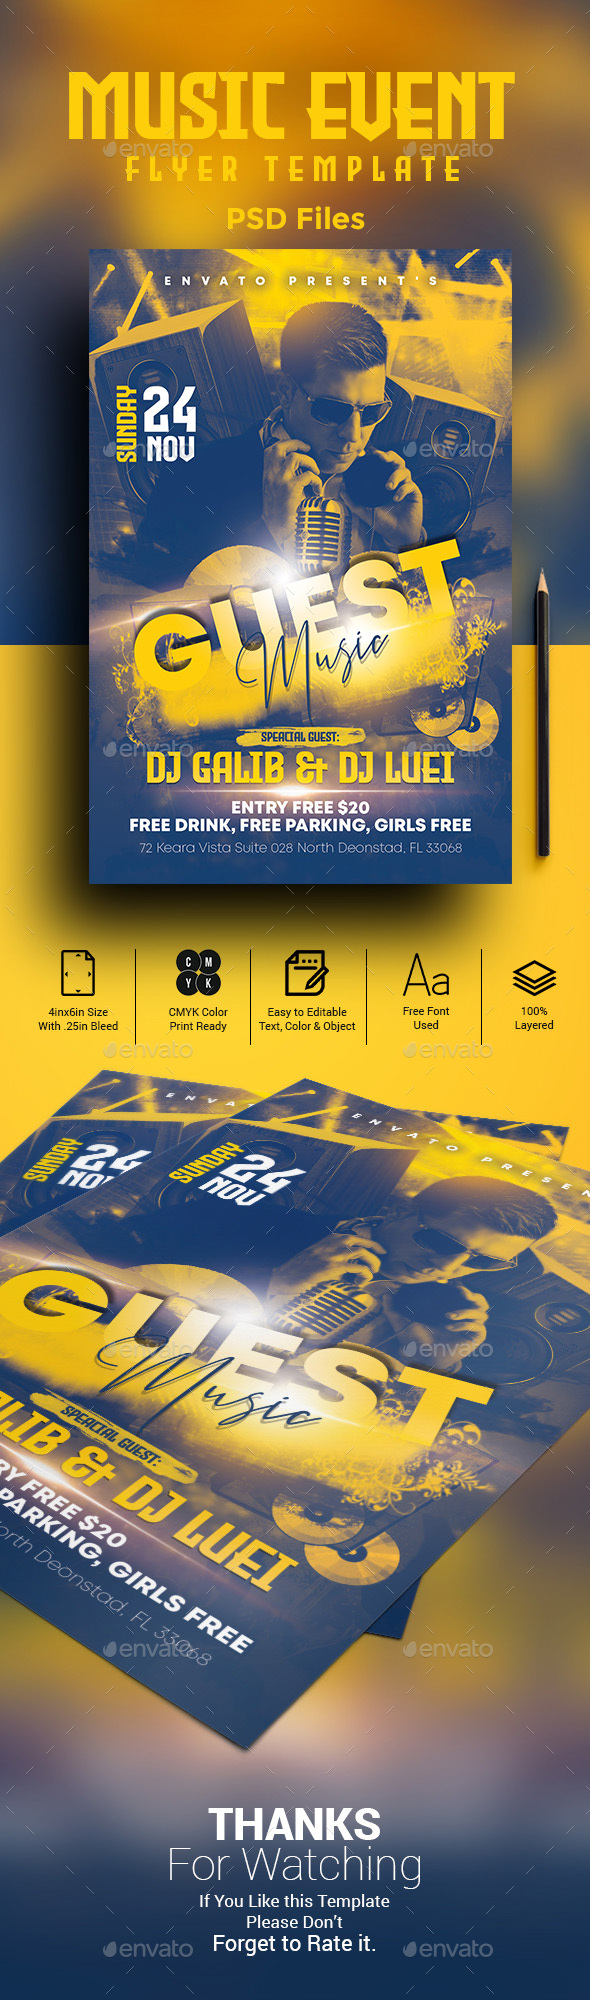 Flyers PSD – Song Match Flyer Template – Download